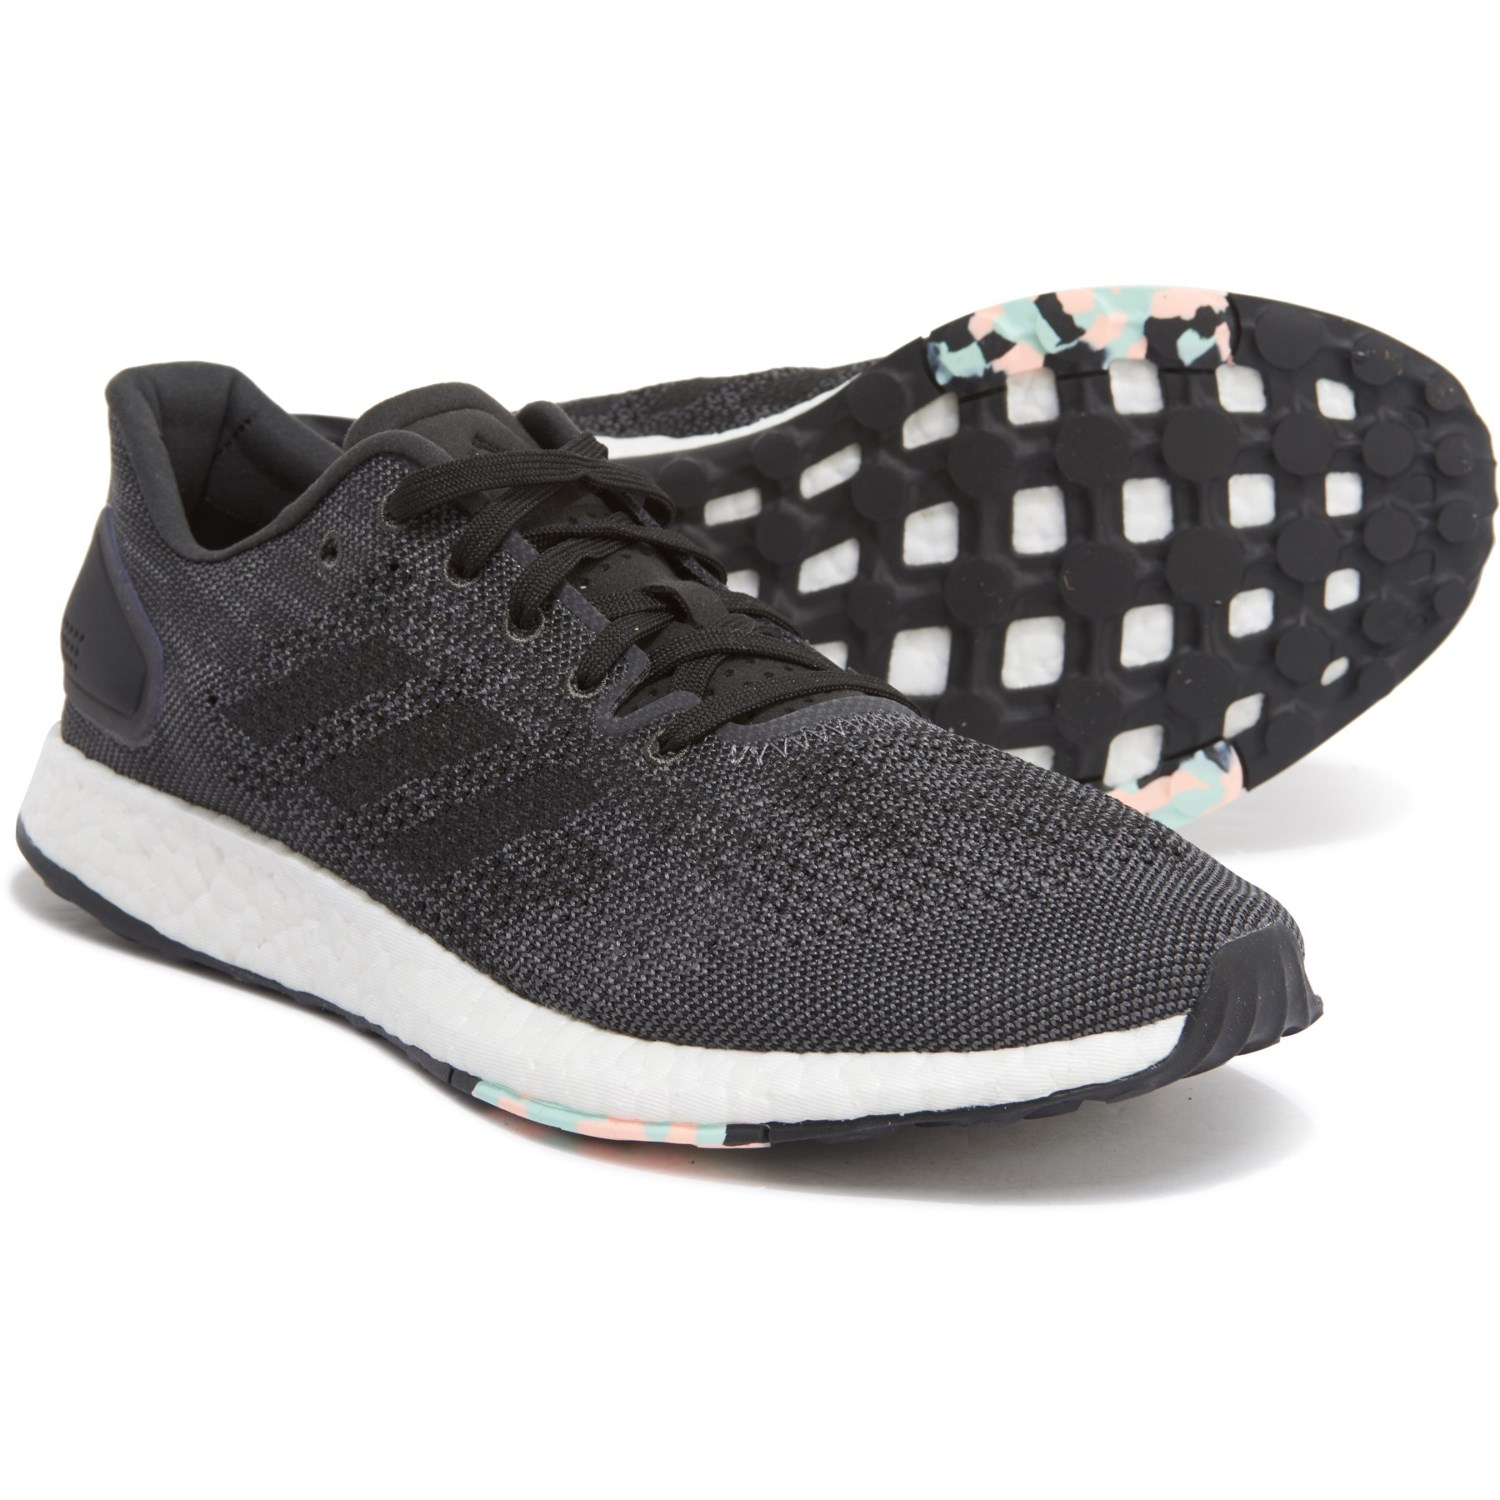 """ADIDAS PURE BOOST DPR """"CORE BLACK"""" $75.00 FREE SHIPPING"""